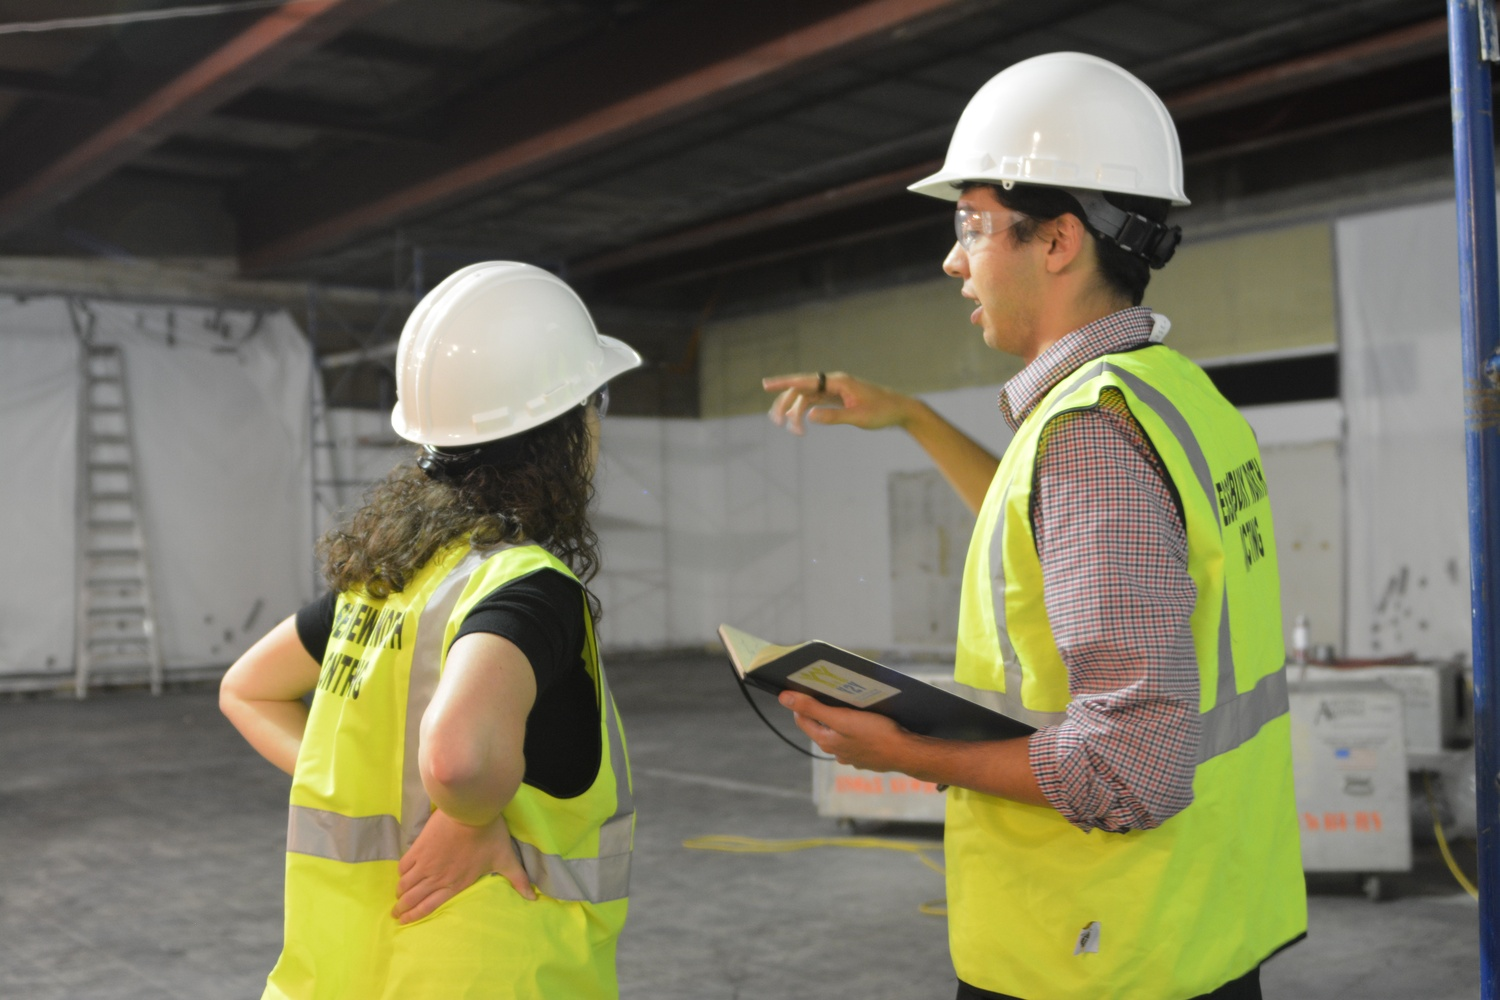 Y2Y Harvard Square co-directors Samuel G. Greenberg '14 and Sarah A. Rosenkrantz '14 discuss construction plans in the heart of the soon-to-be shelter in September.